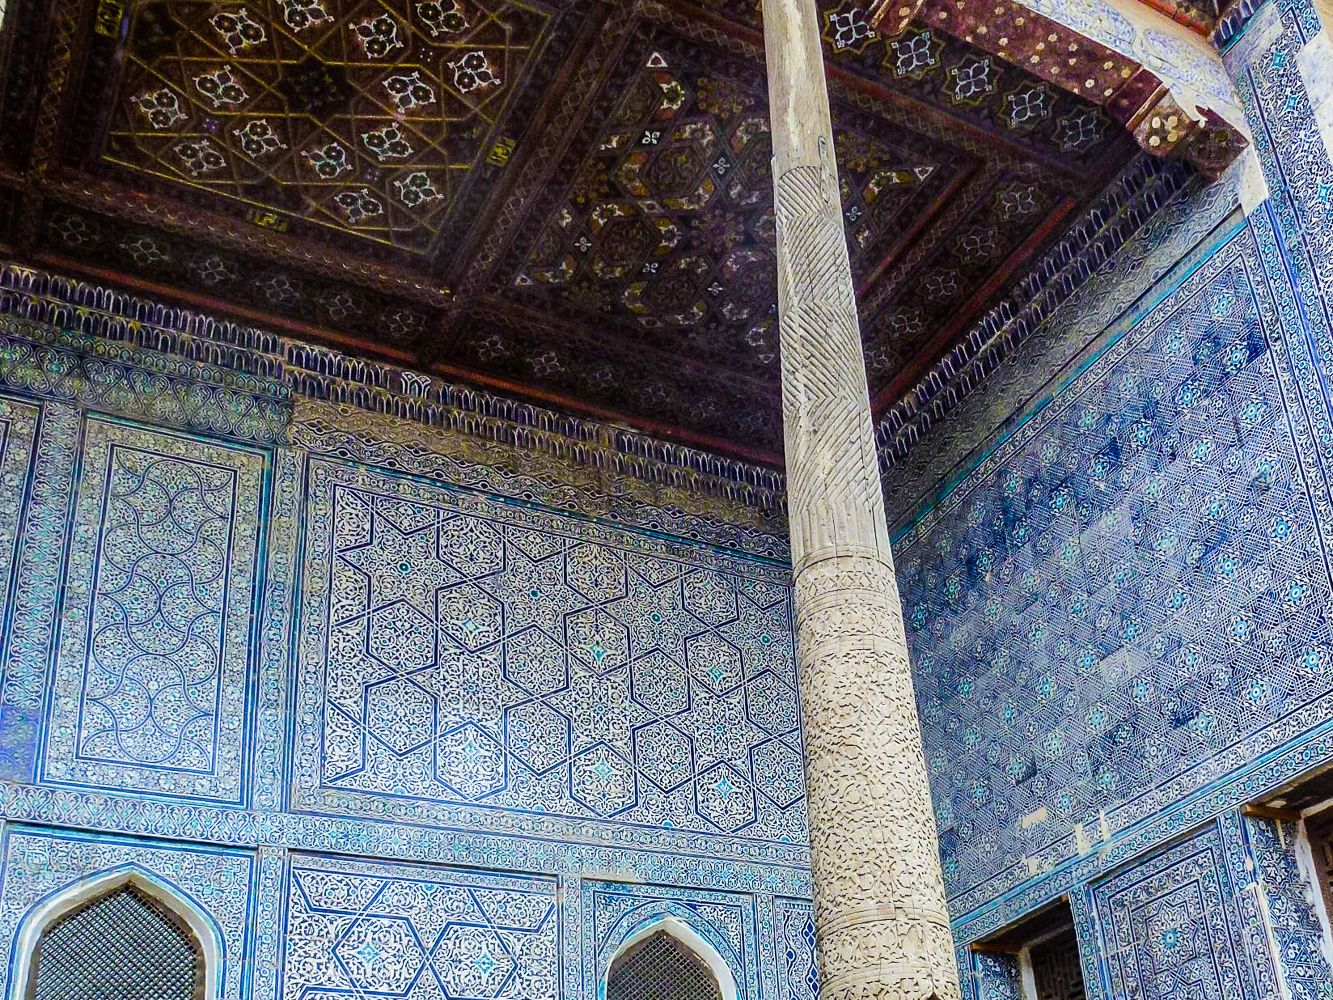 Stone palace of the khan in Khiva in Uzbekistan. deocrated blue tiles of Central Asia